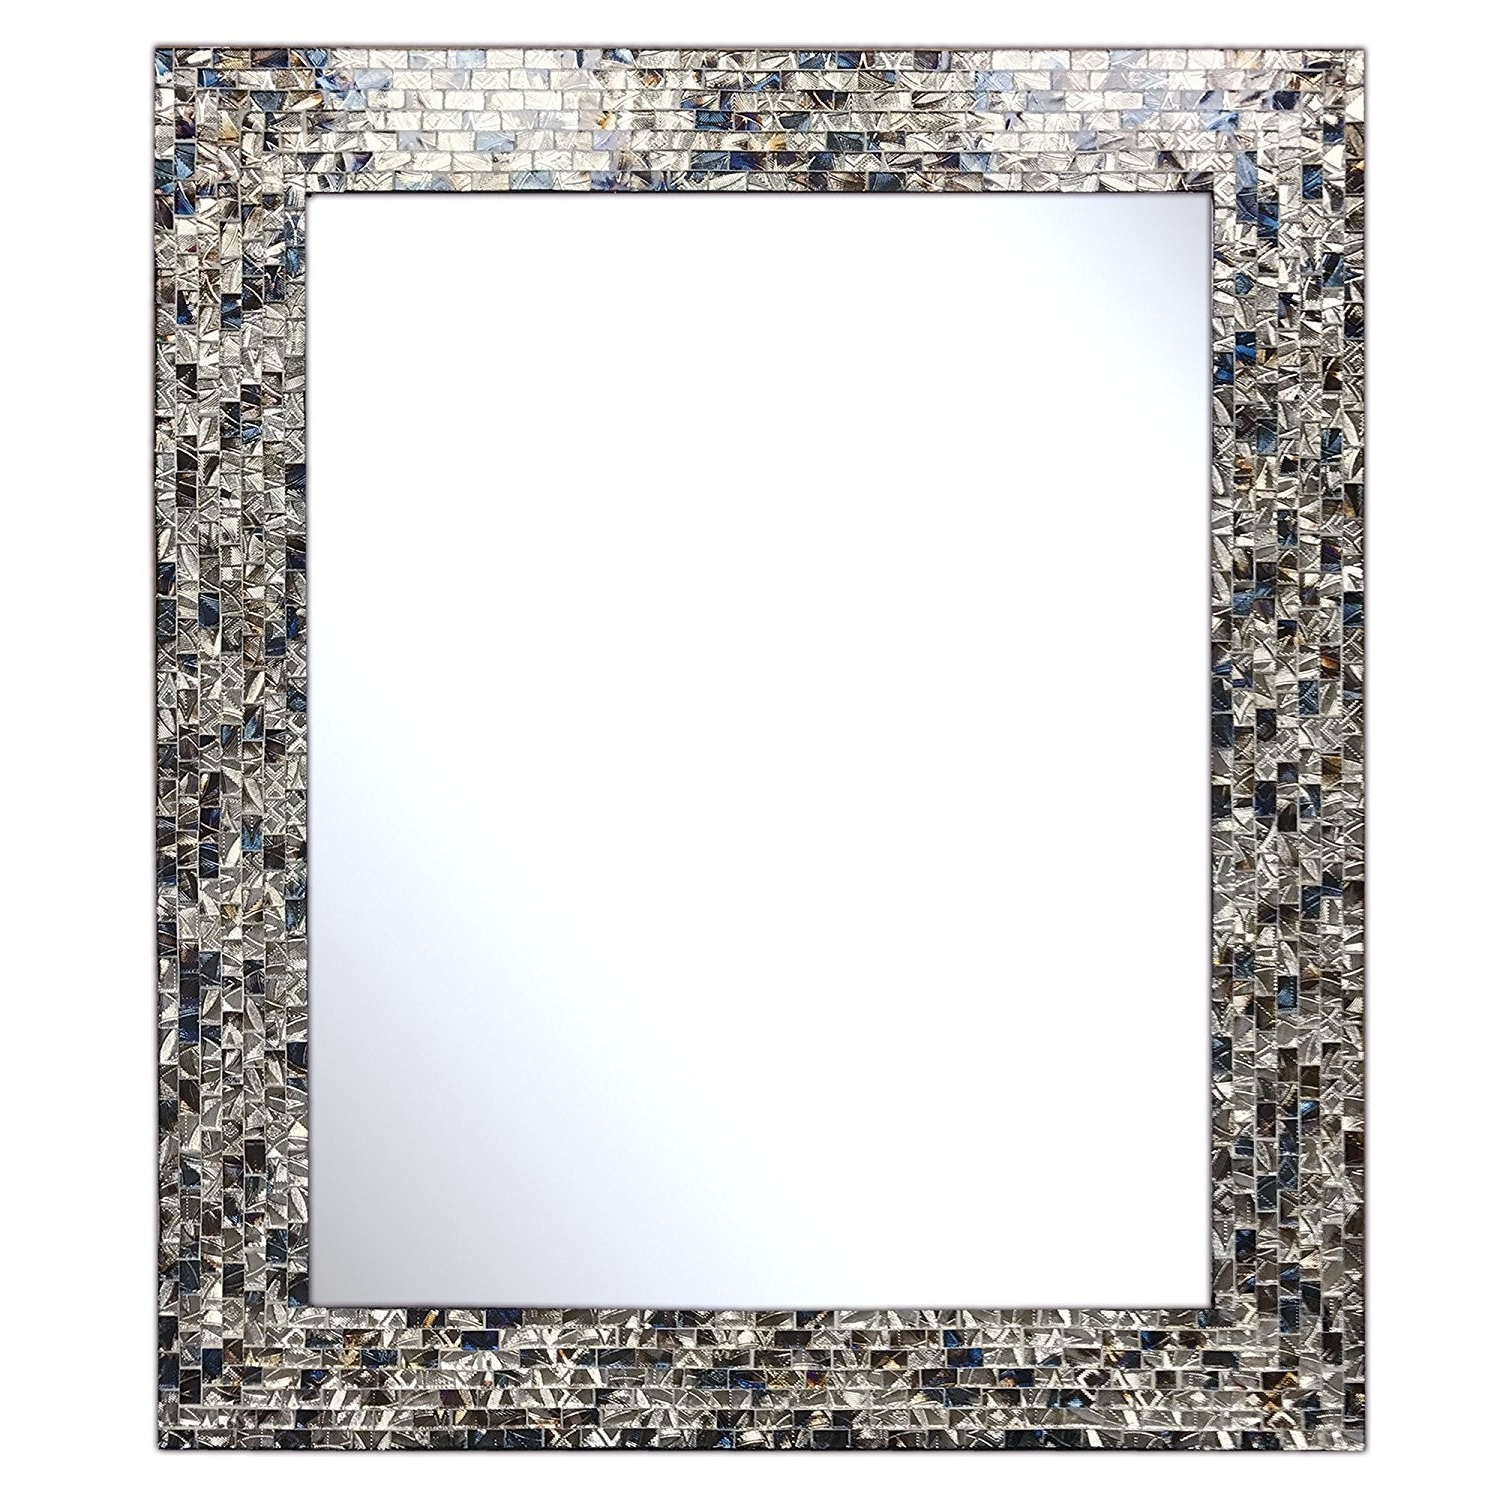 "Multi Colored & Silver, Luxe Mosaic Glass Framed Wall Mirror, Decorative Embossed Rectangular Vanity / Accent Mirror (30"" X 24"") In Latest Mosaic Wall Mirrors (View 15 of 20)"